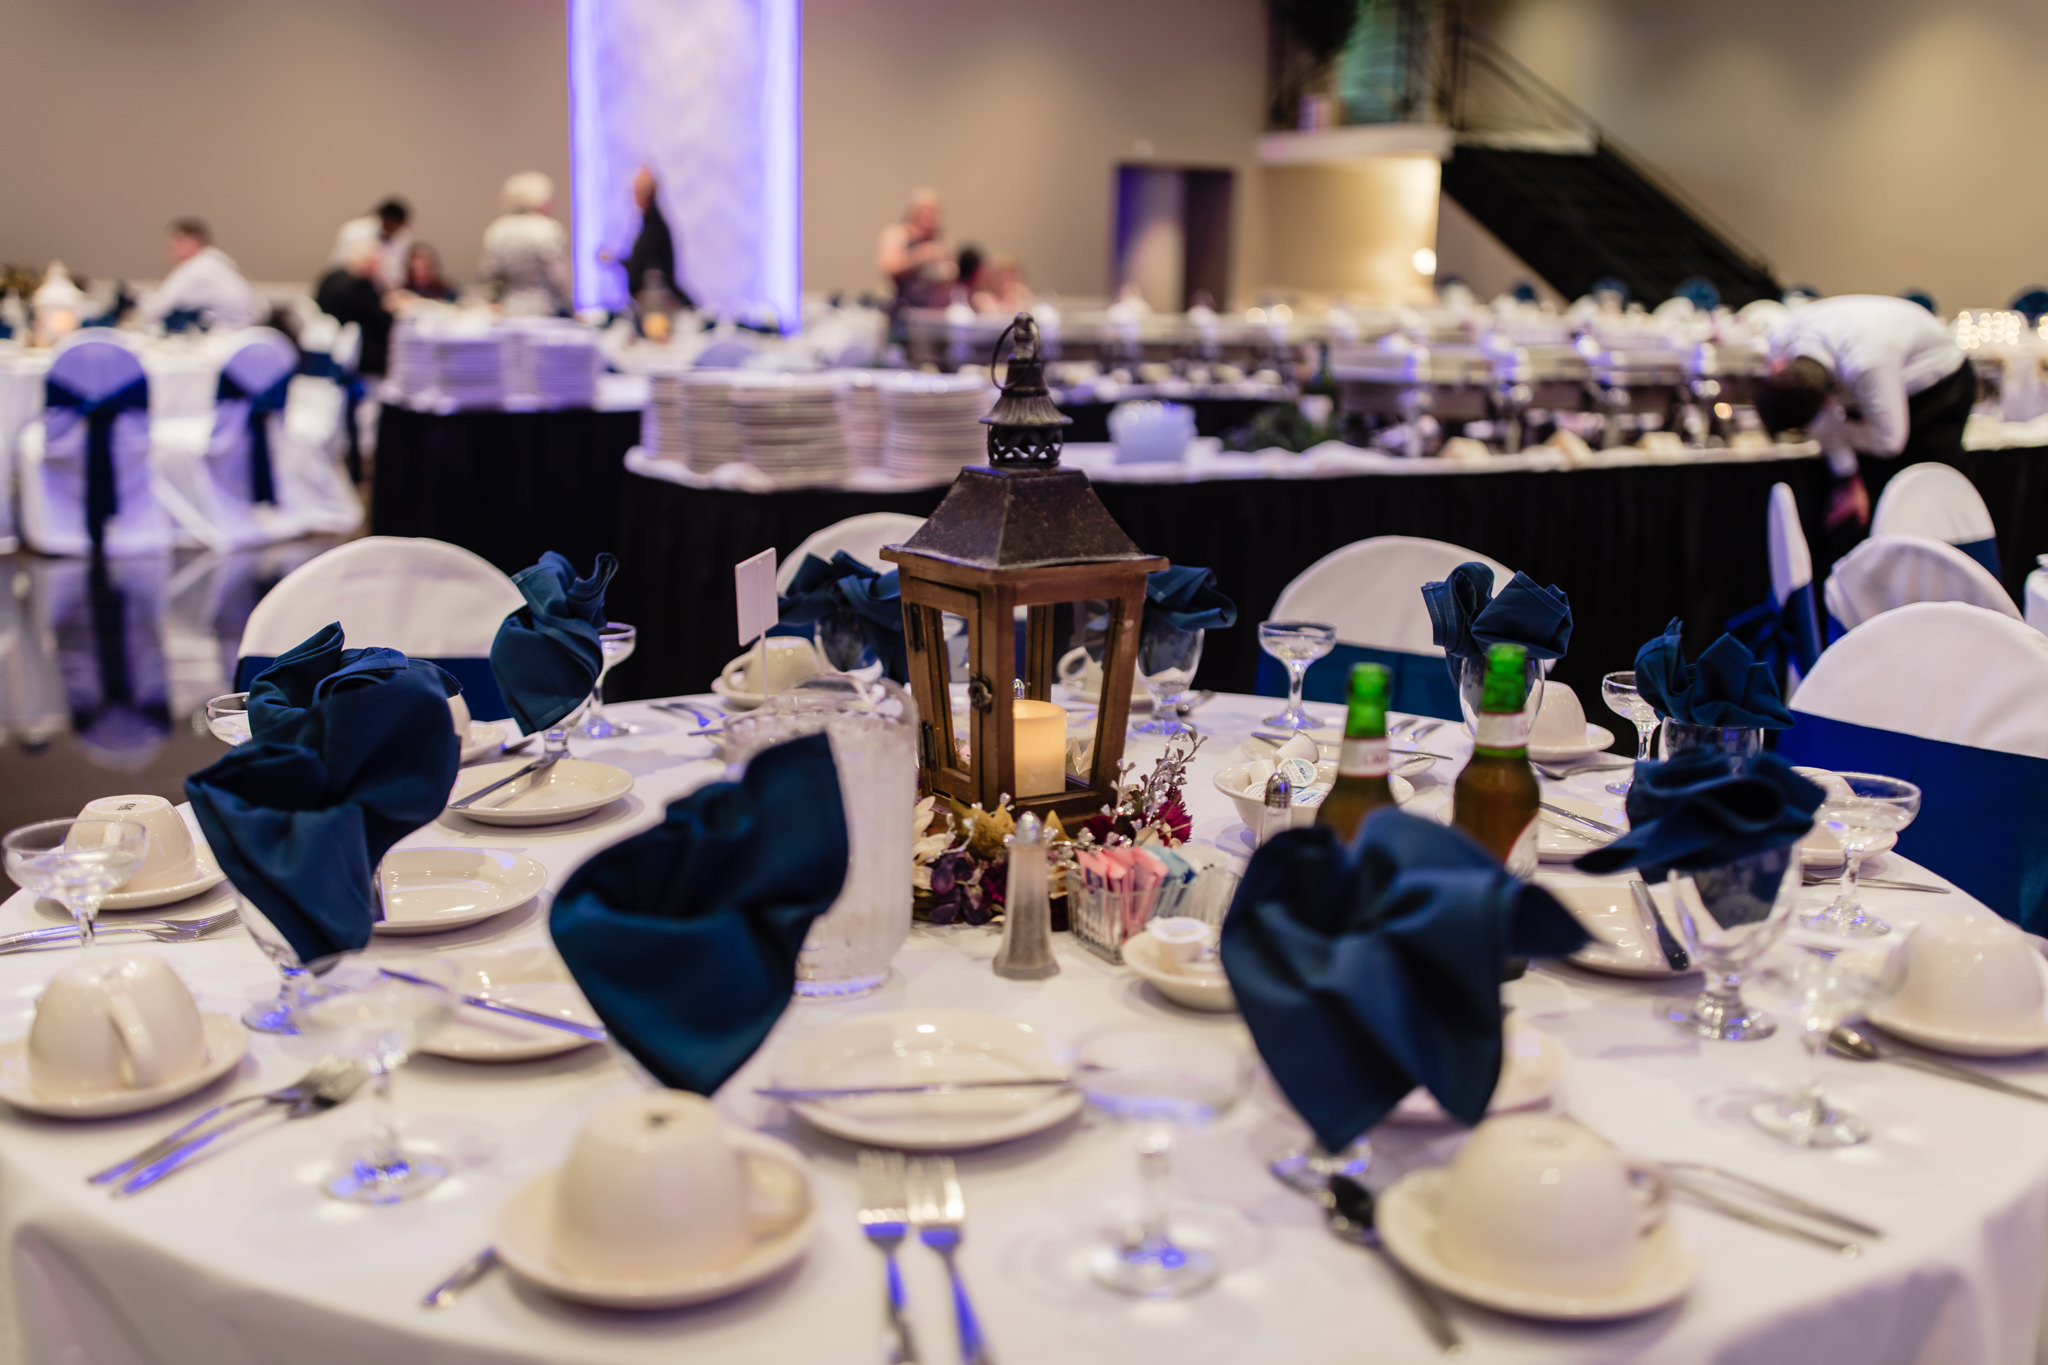 Lantern centerpieces with navy napkins setup for a wedding at the Fez